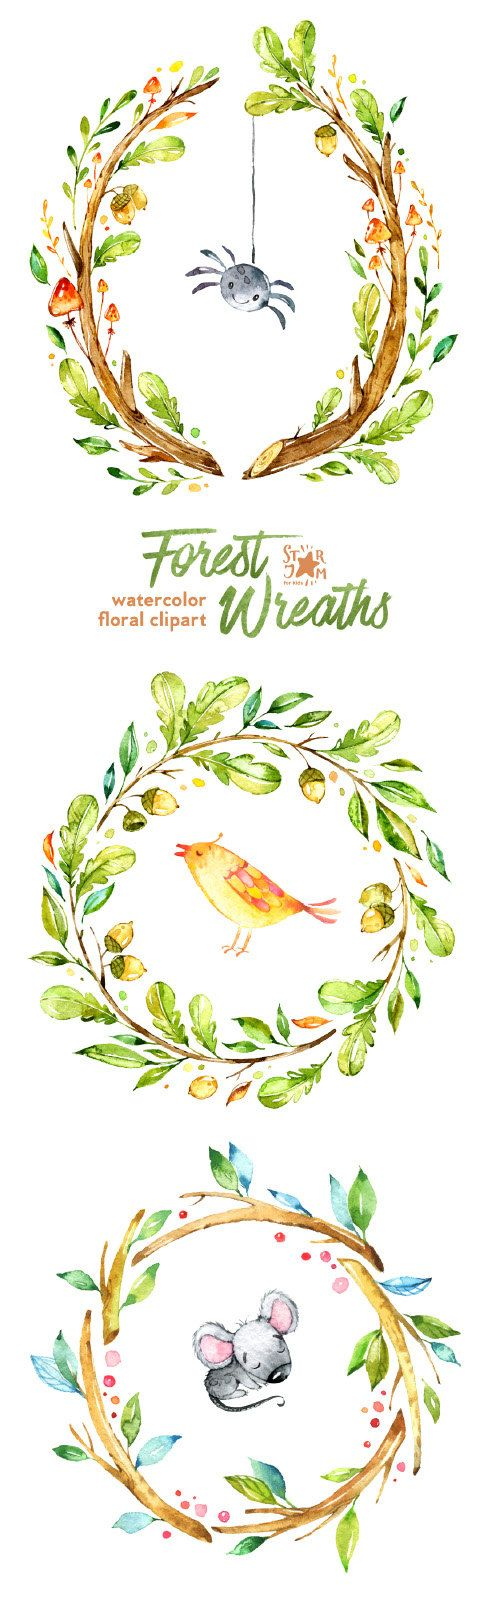 This Floral Forest Wreaths and other graphics Set is just what you needed for the perfect invitations, craft projects, paper products, party